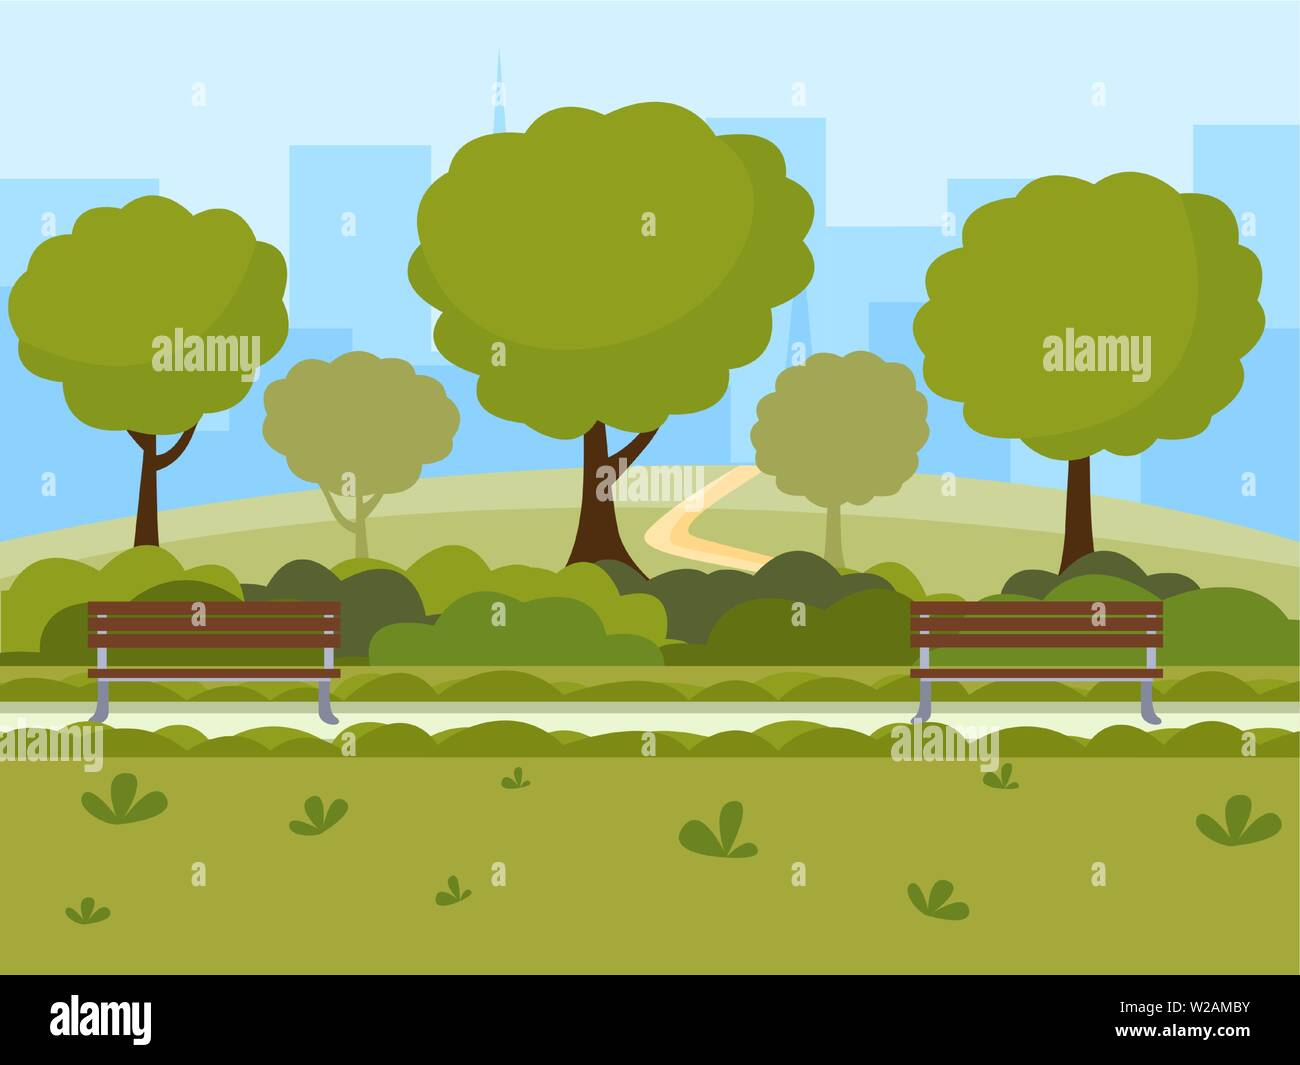 City park flat vector illustration. Outdoor leisure on nature public place, green trees, wooden benches and modern buildings silhouettes landscape. Recreational urban park cartoon color drawing - Stock Vector